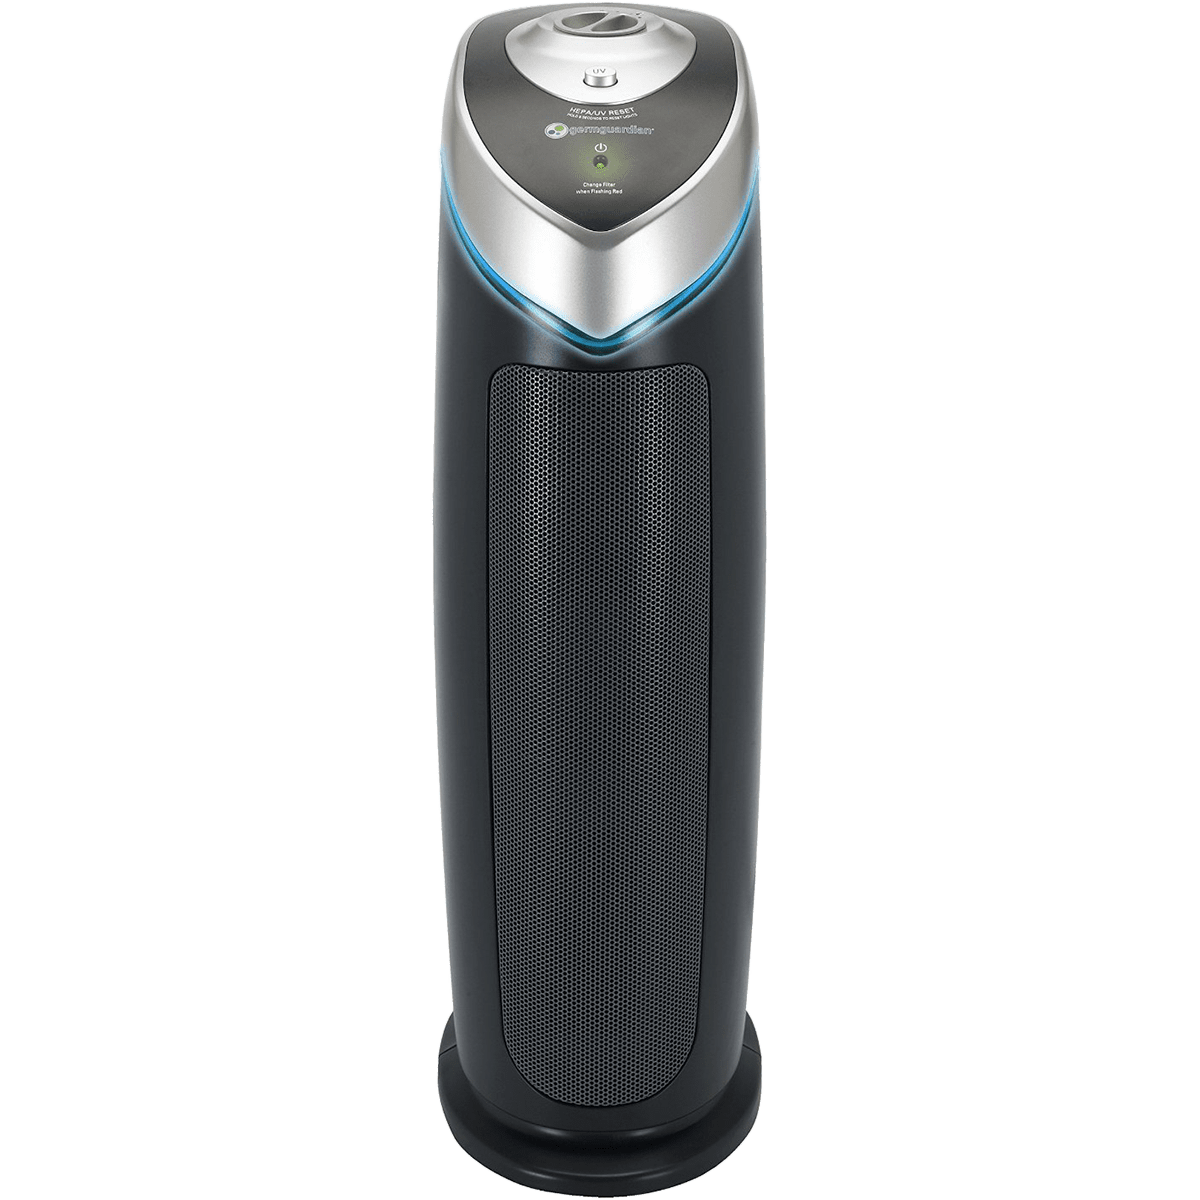 Germ Guardian AC4825 3-in-1 UV-C HEPA Air Cleaning System ge3565